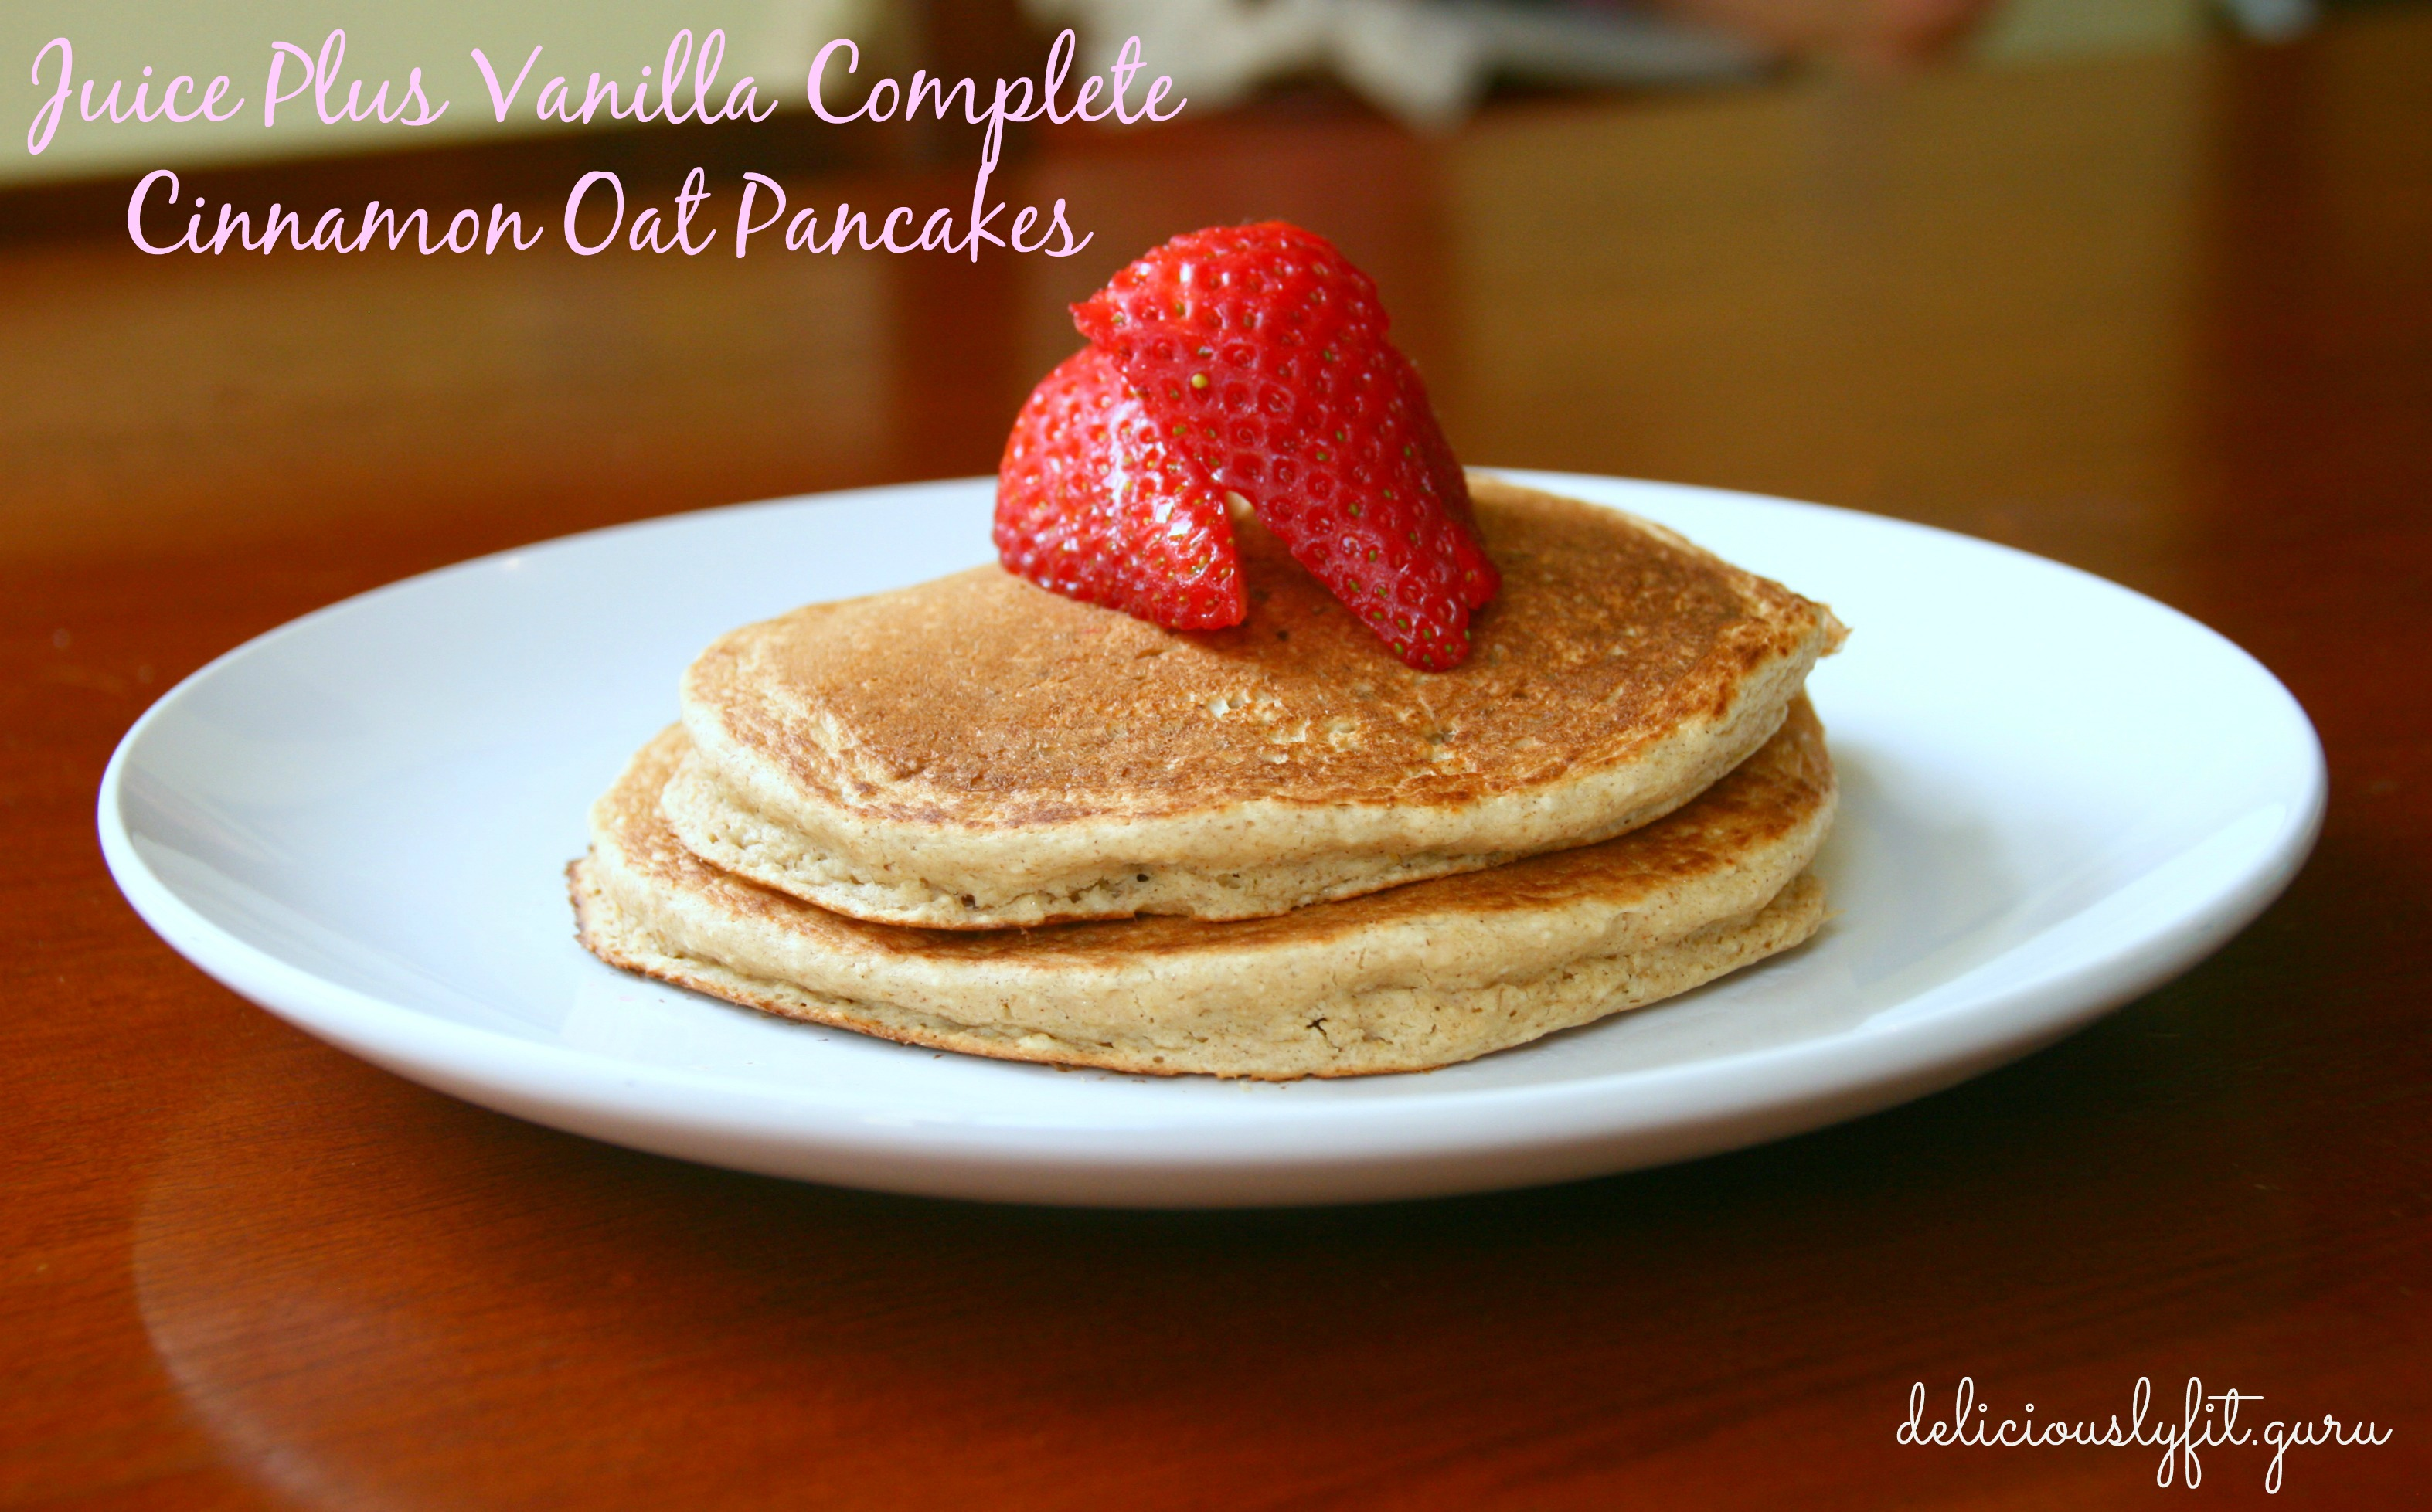 Amato Juice Plus Vanilla Complete Cinnamon Oat Pancakes - Deliciously Fit IF36